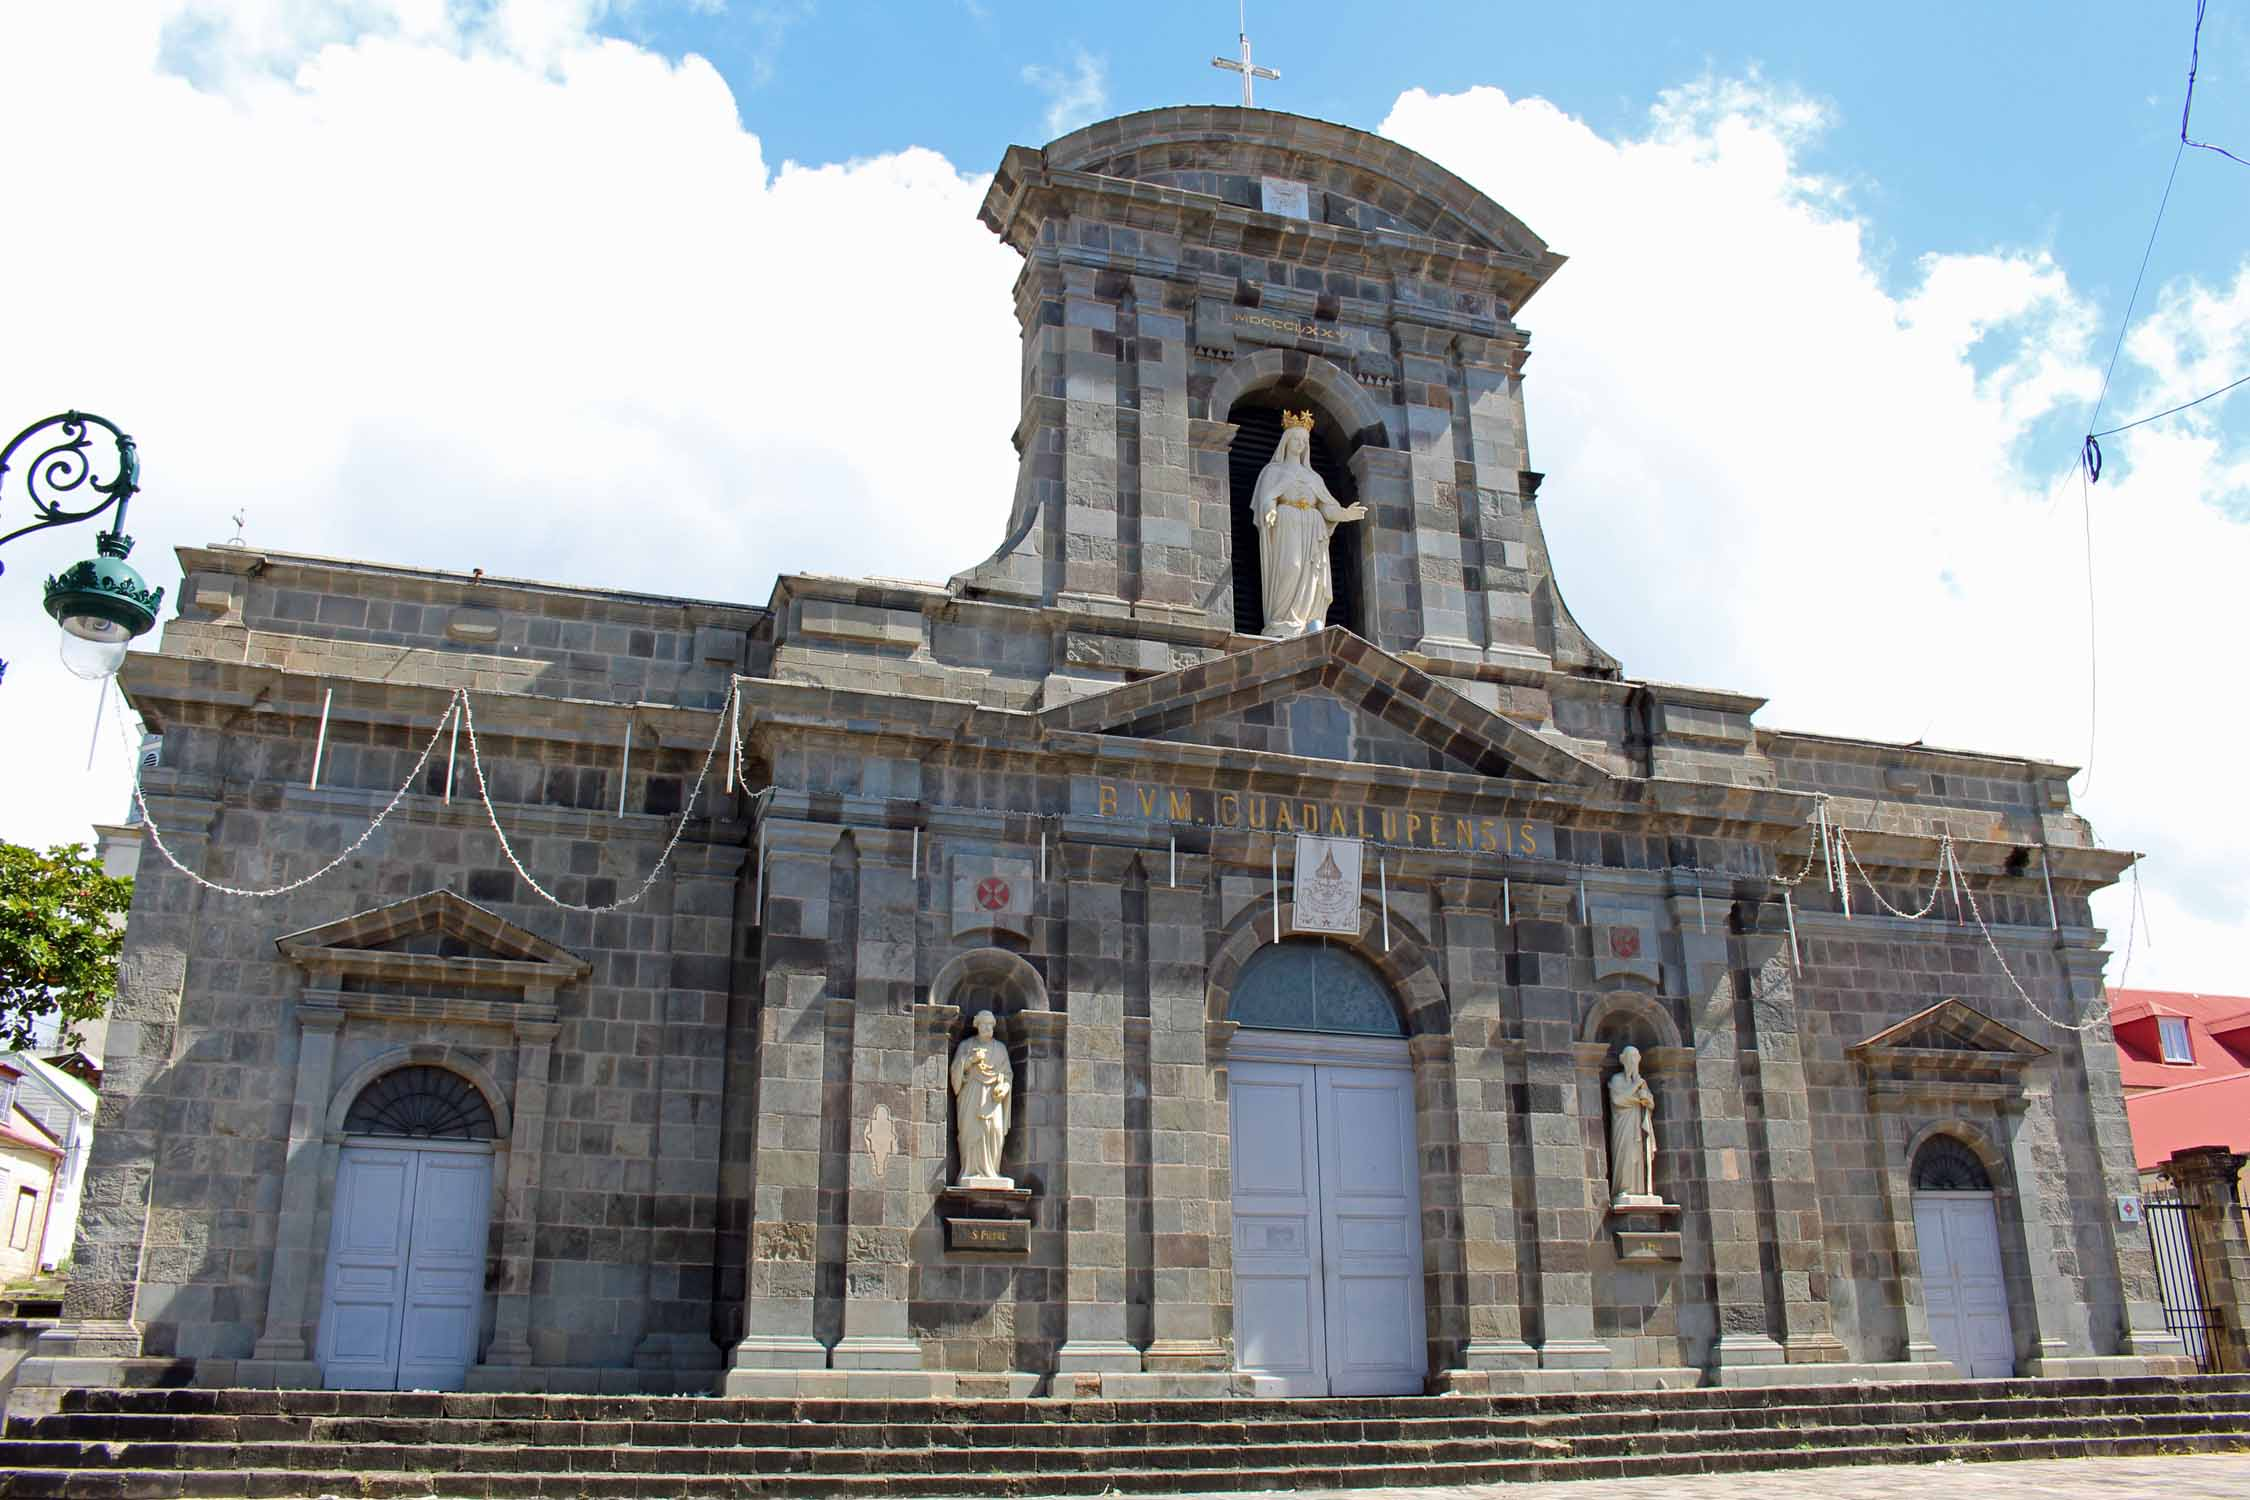 Basse-Terre, Guadalupe, catedral